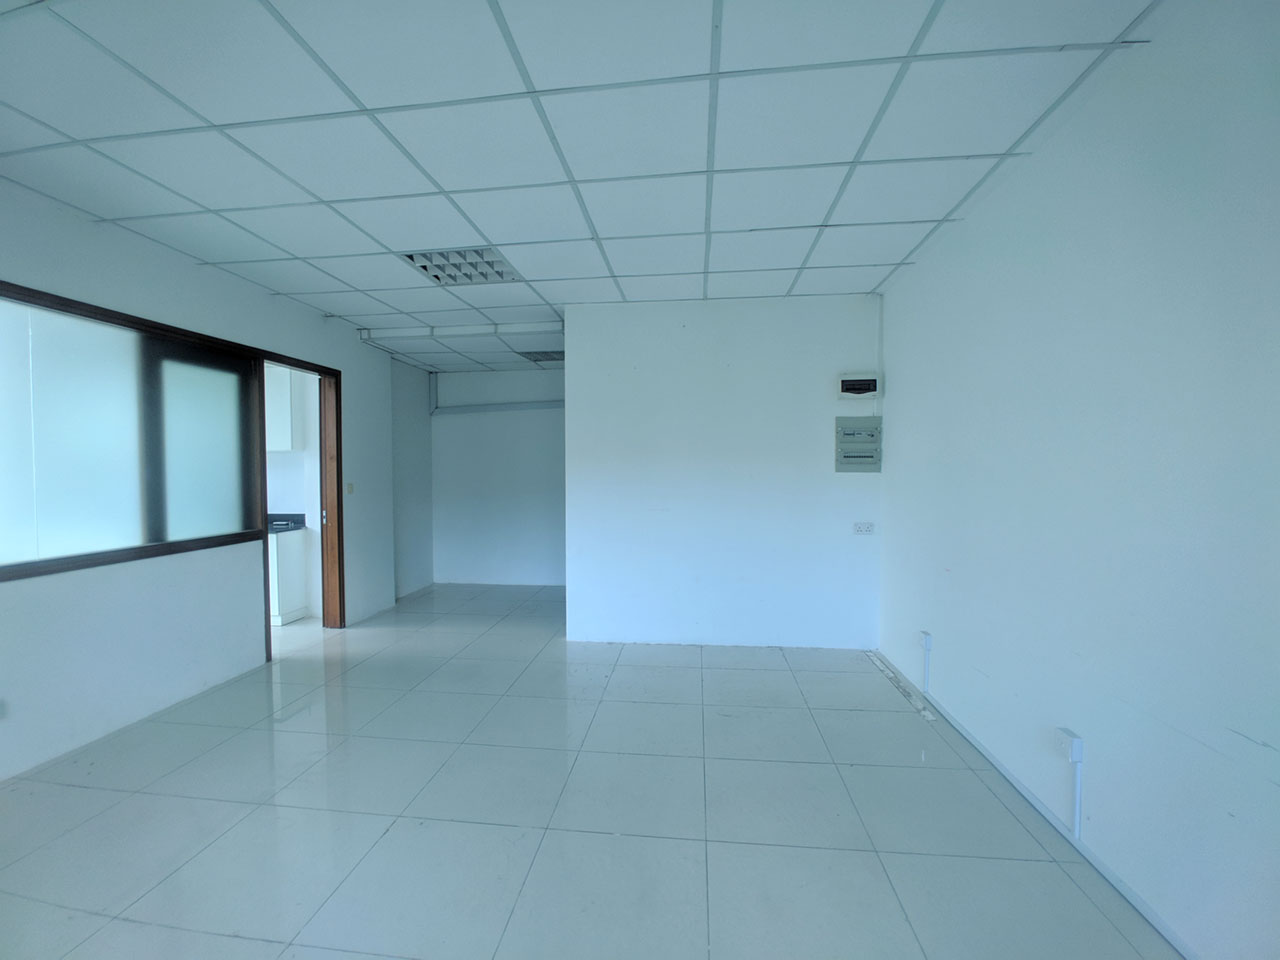 136 Sq m office space for rent @ Daun Penh area